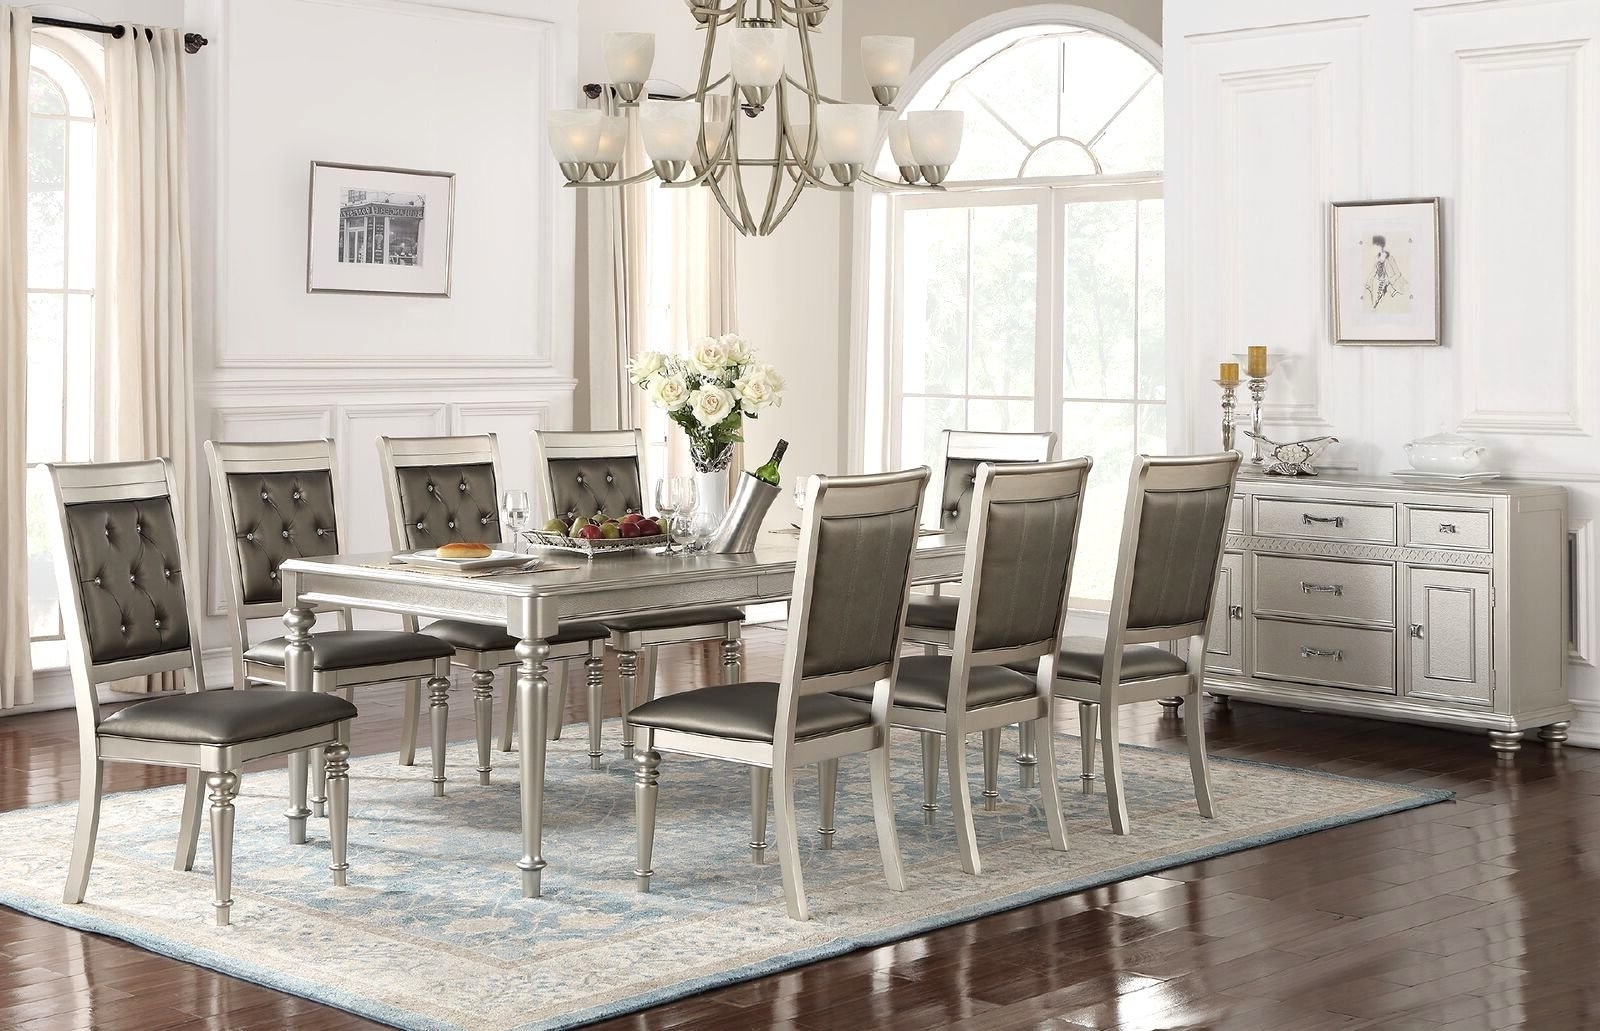 Caira Black 7 Piece Dining Sets With Arm Chairs & Diamond Back Chairs For 2018 9 Piece Dining Sets You'll Love (Gallery 14 of 16)